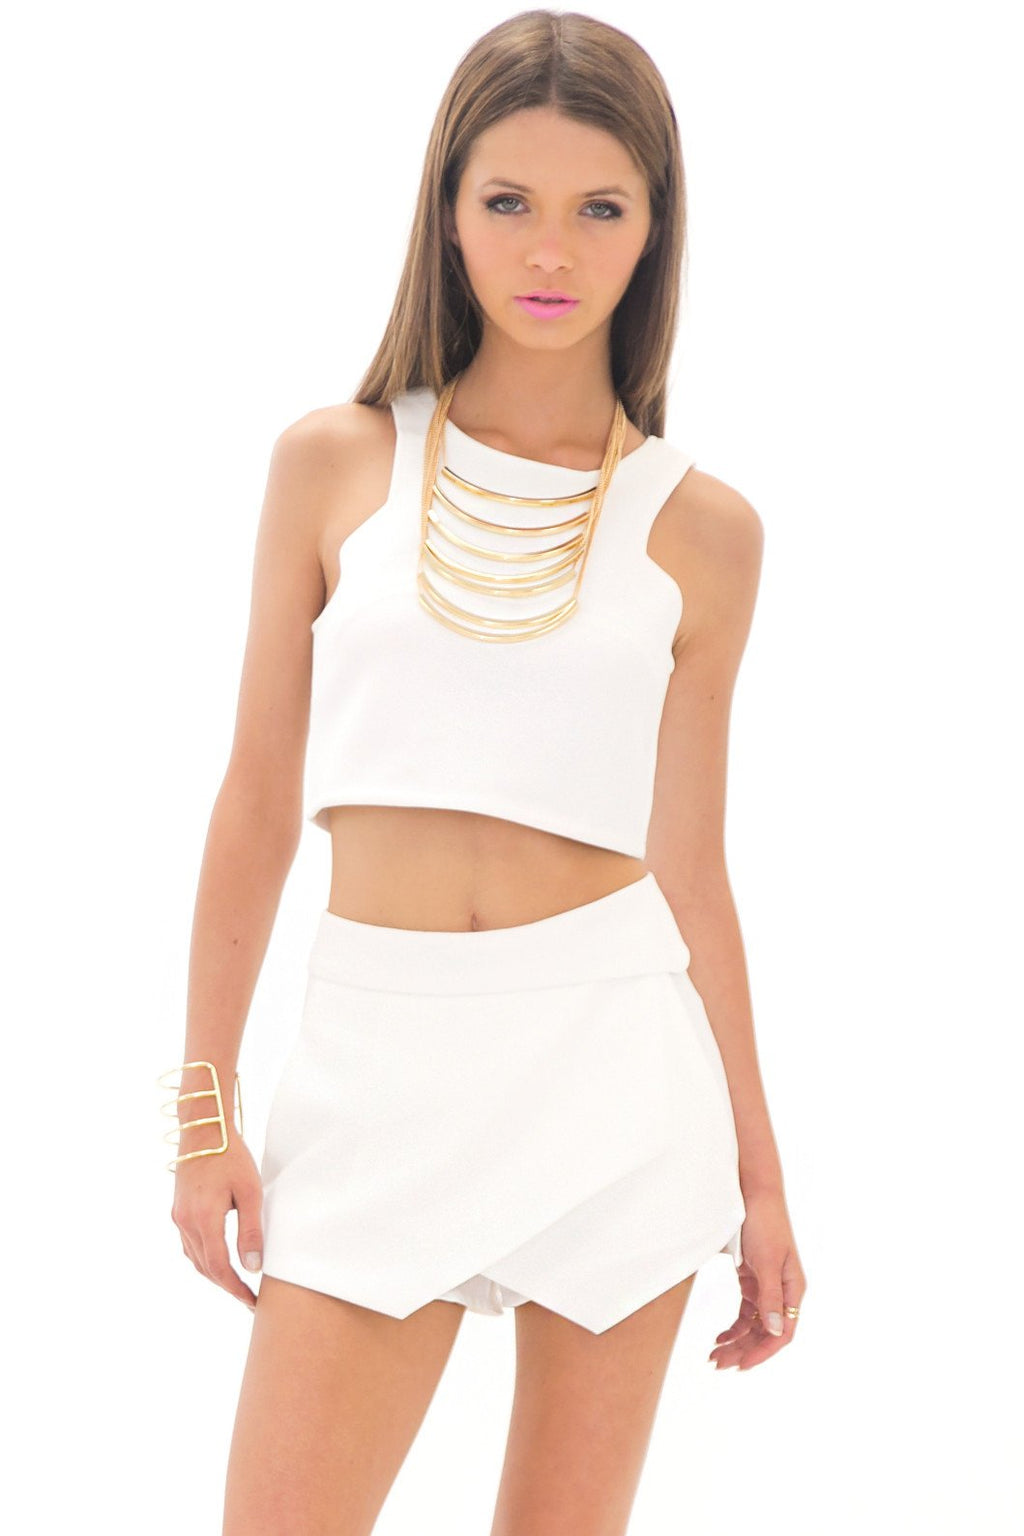 ADDISON CROP TOP - Haute & Rebellious